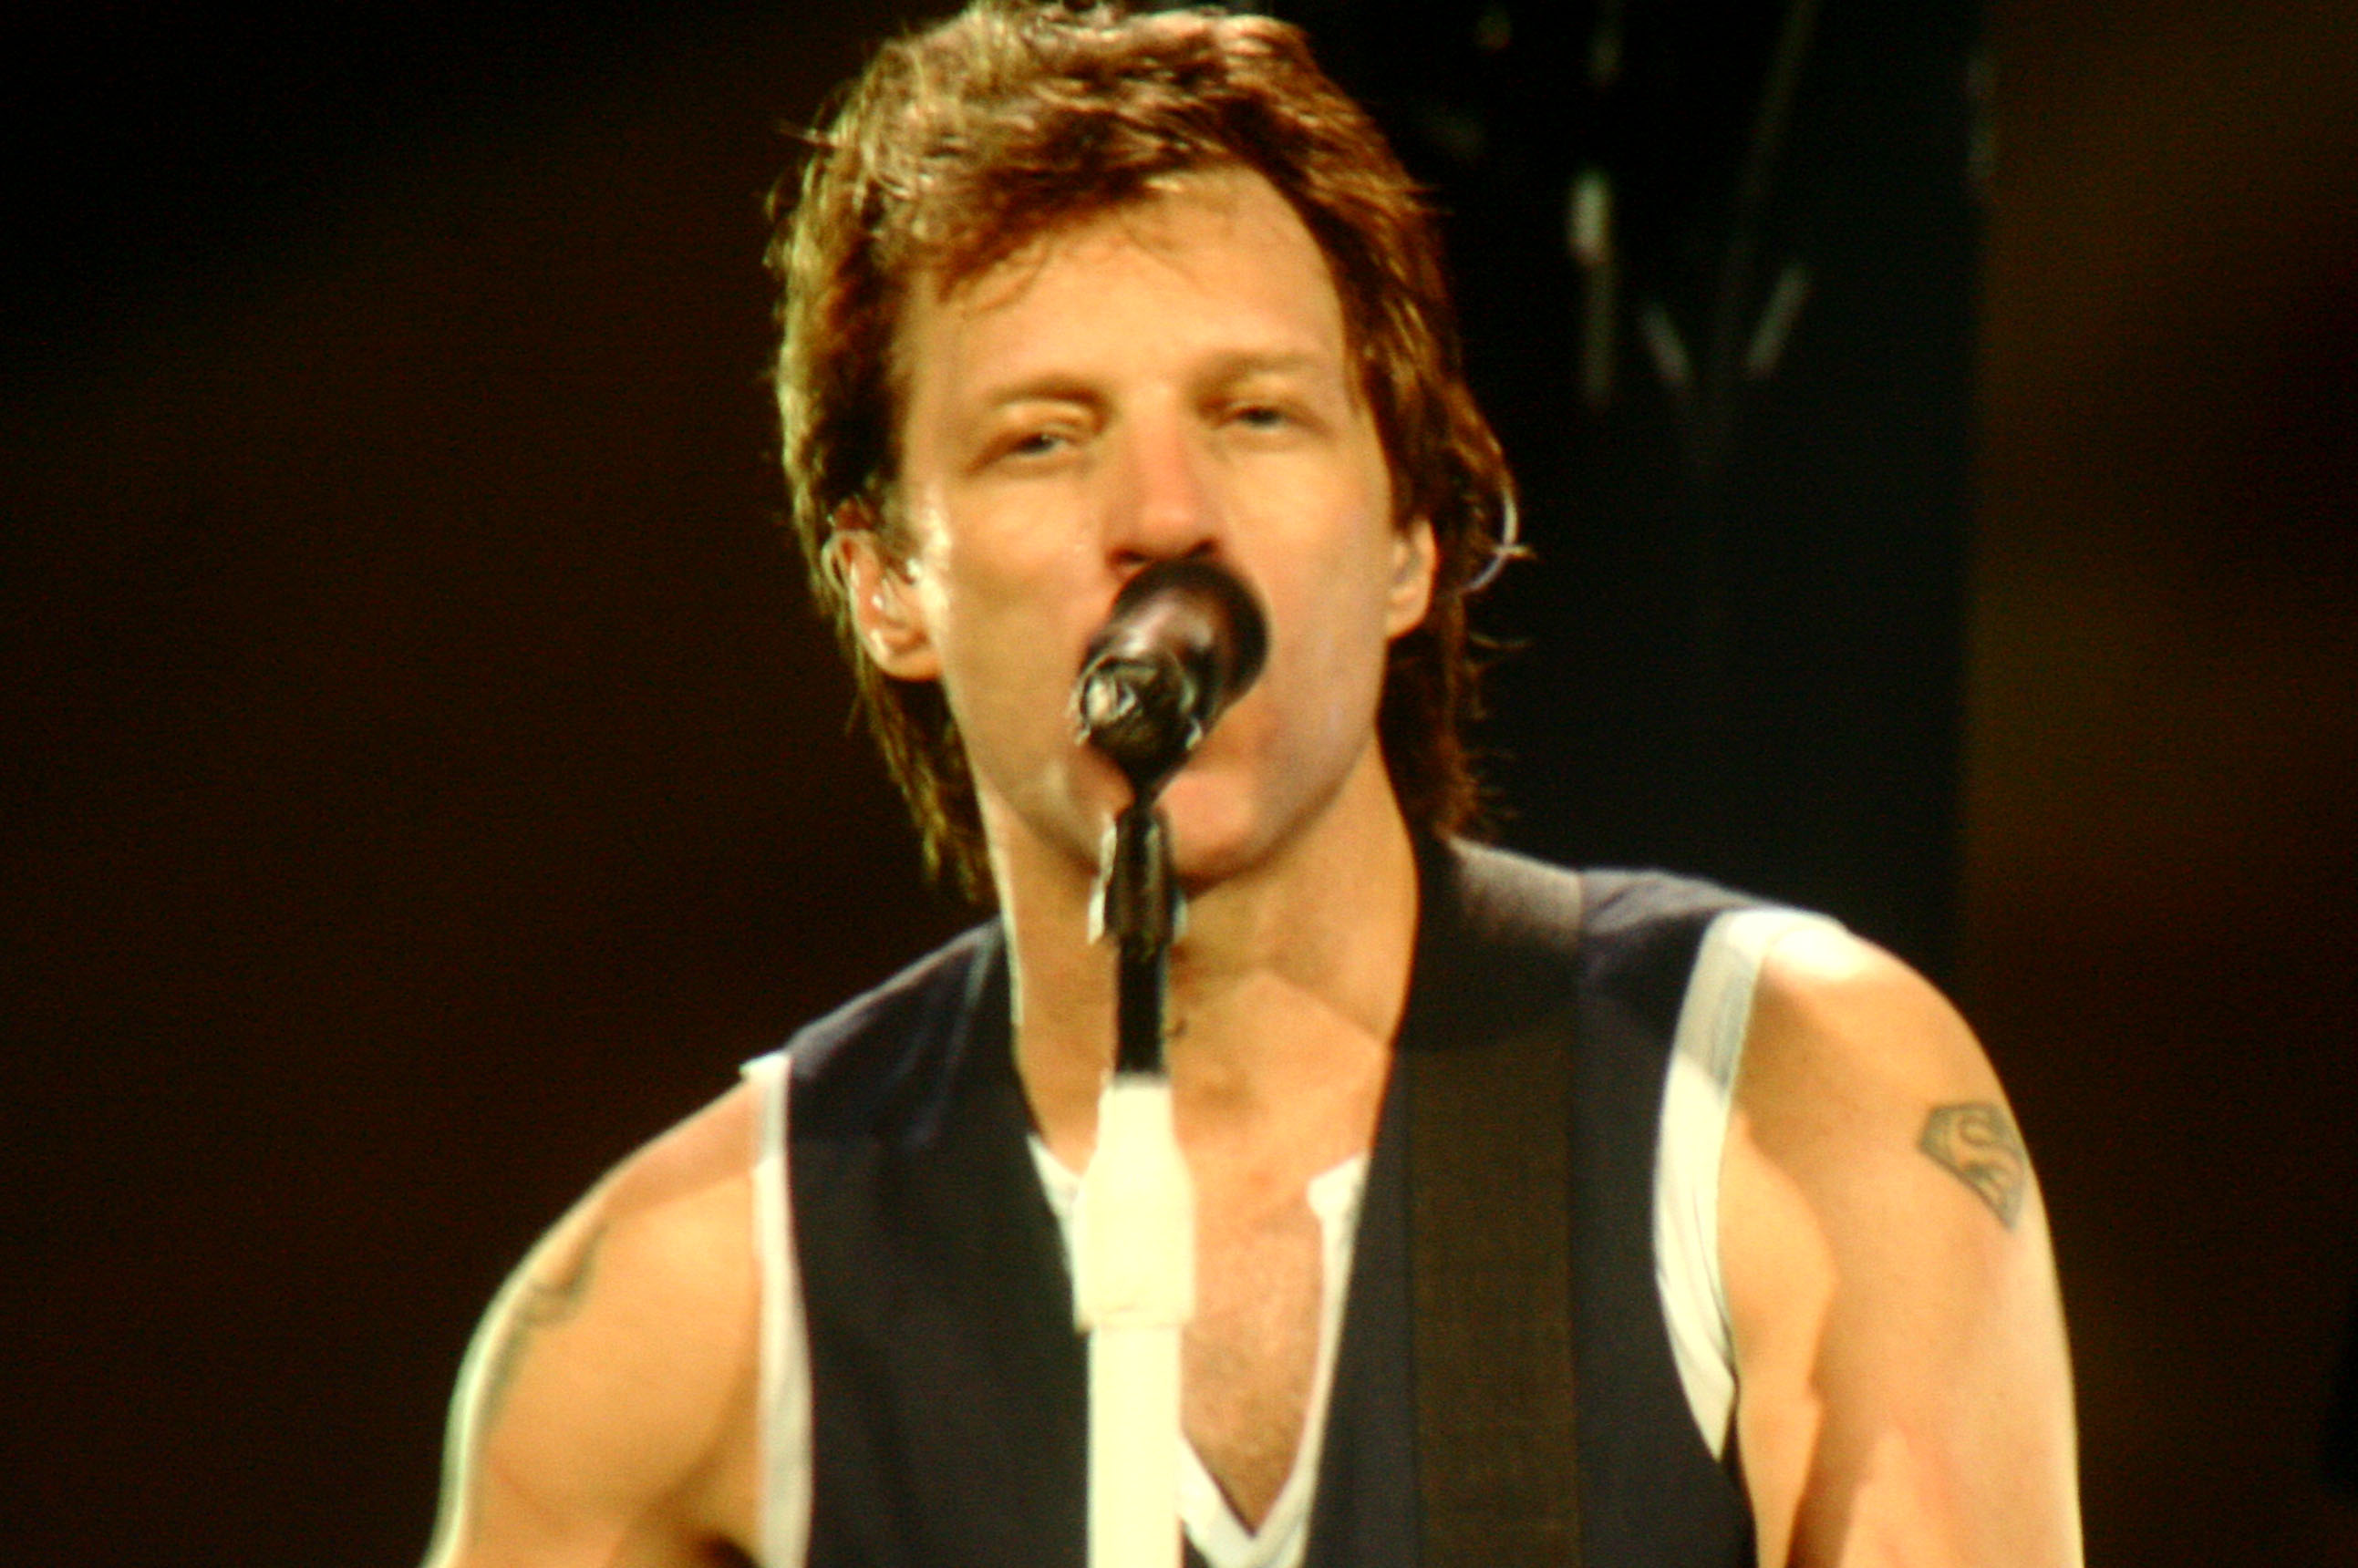 http://upload.wikimedia.org/wikipedia/commons/7/73/Jon_Bon_Jovi.jpg